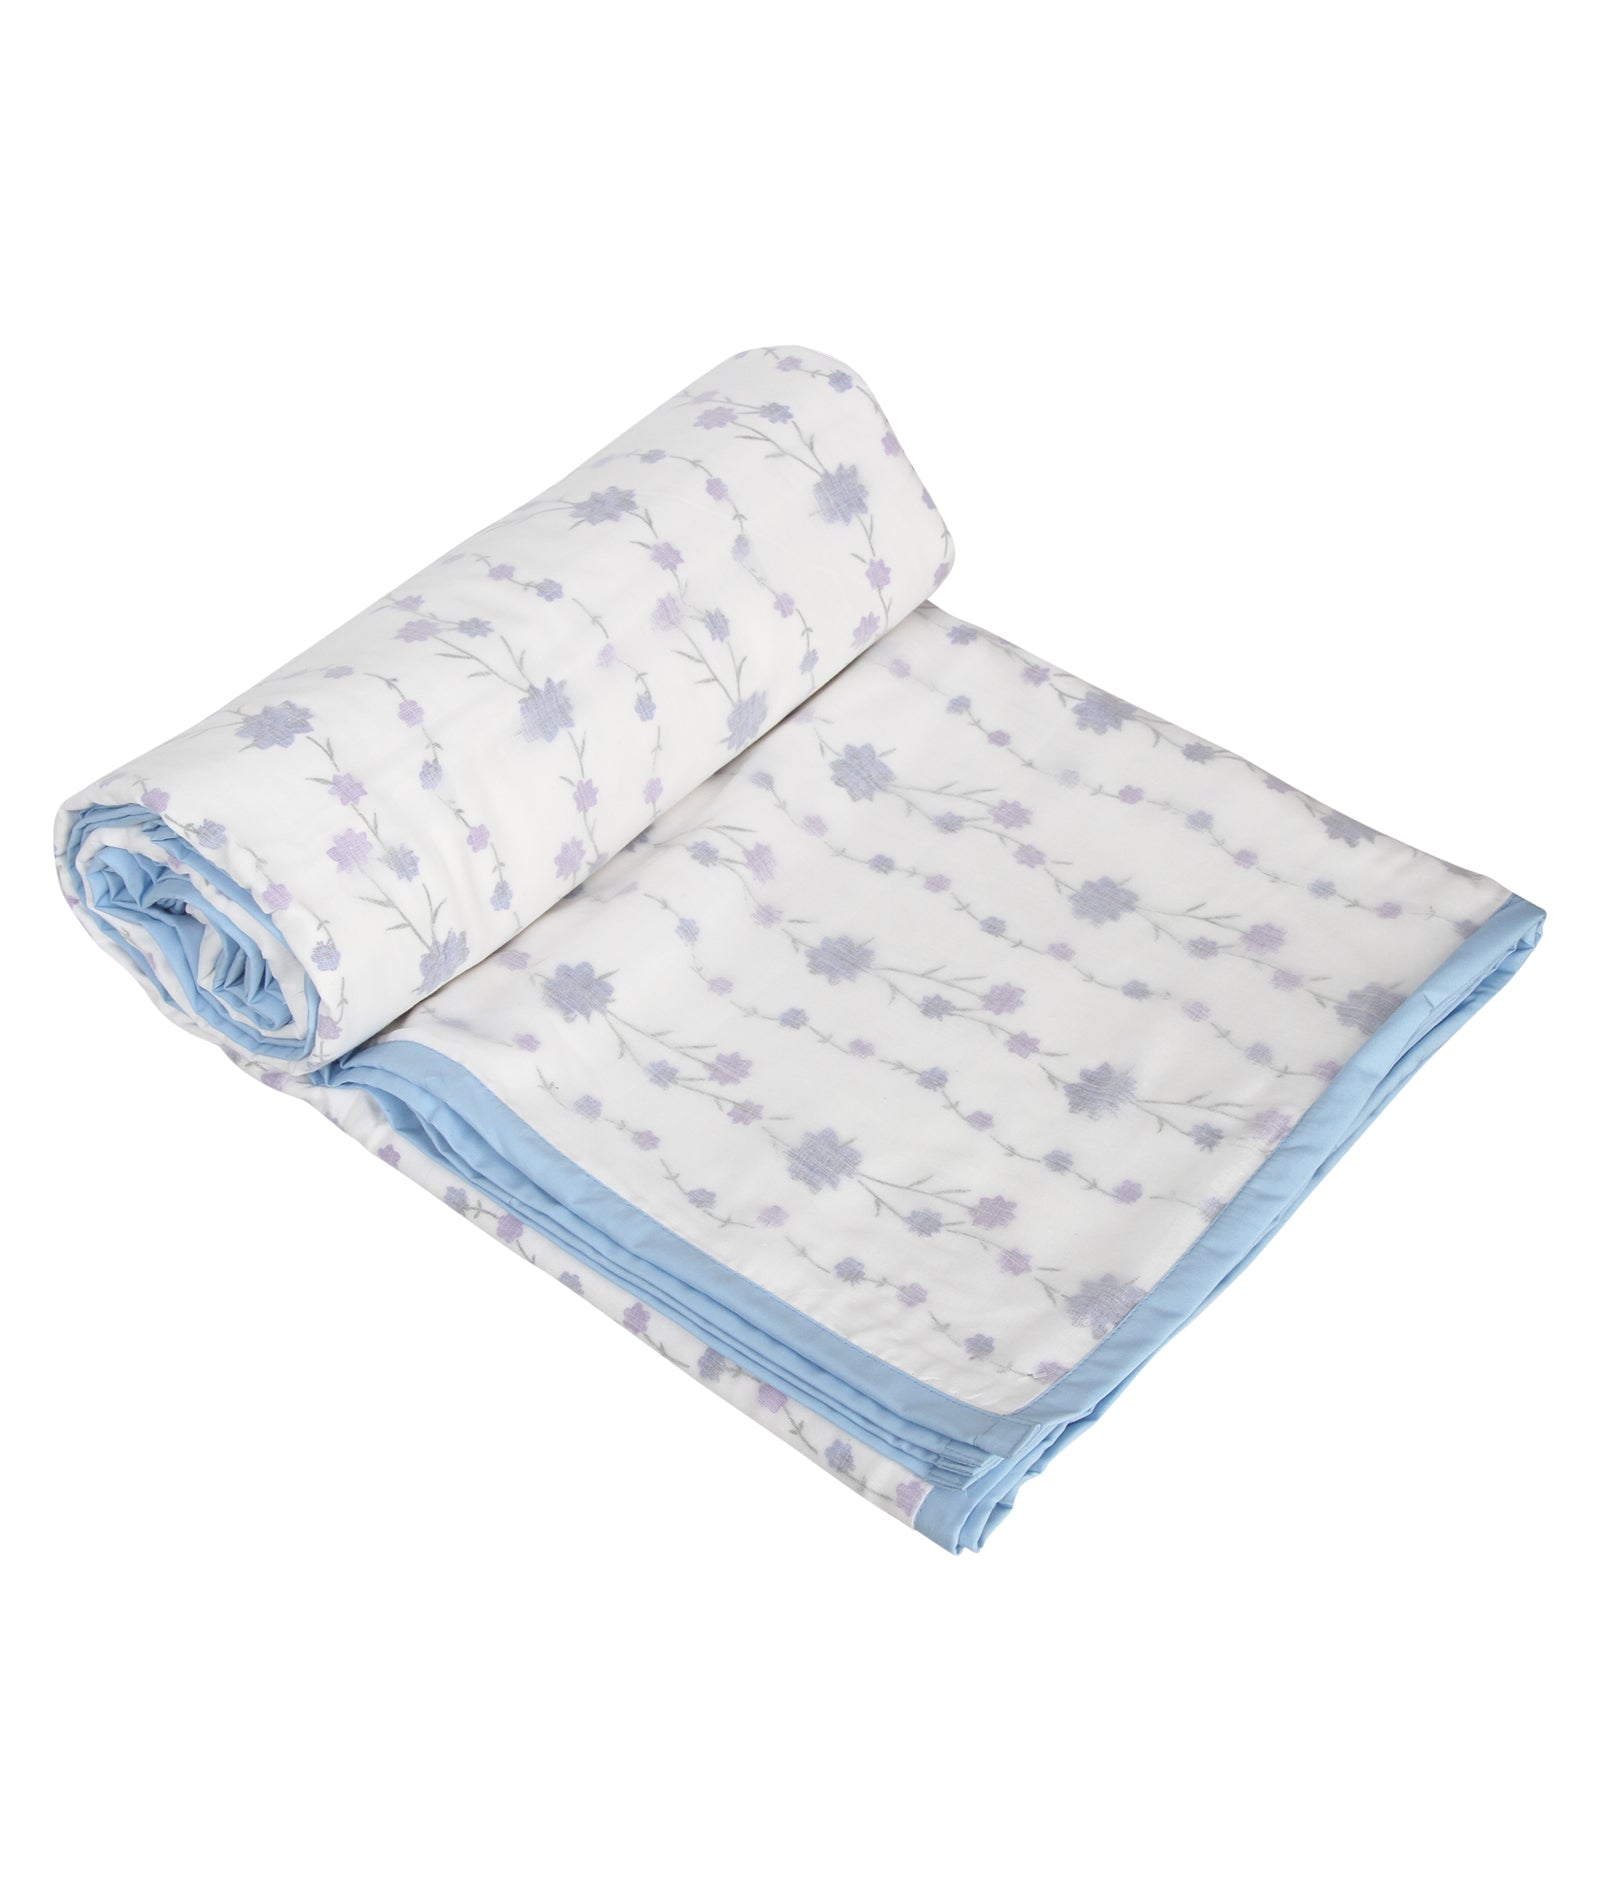 Blue Pastel Flower Cotton Single Dohar (88 x 58 inches)